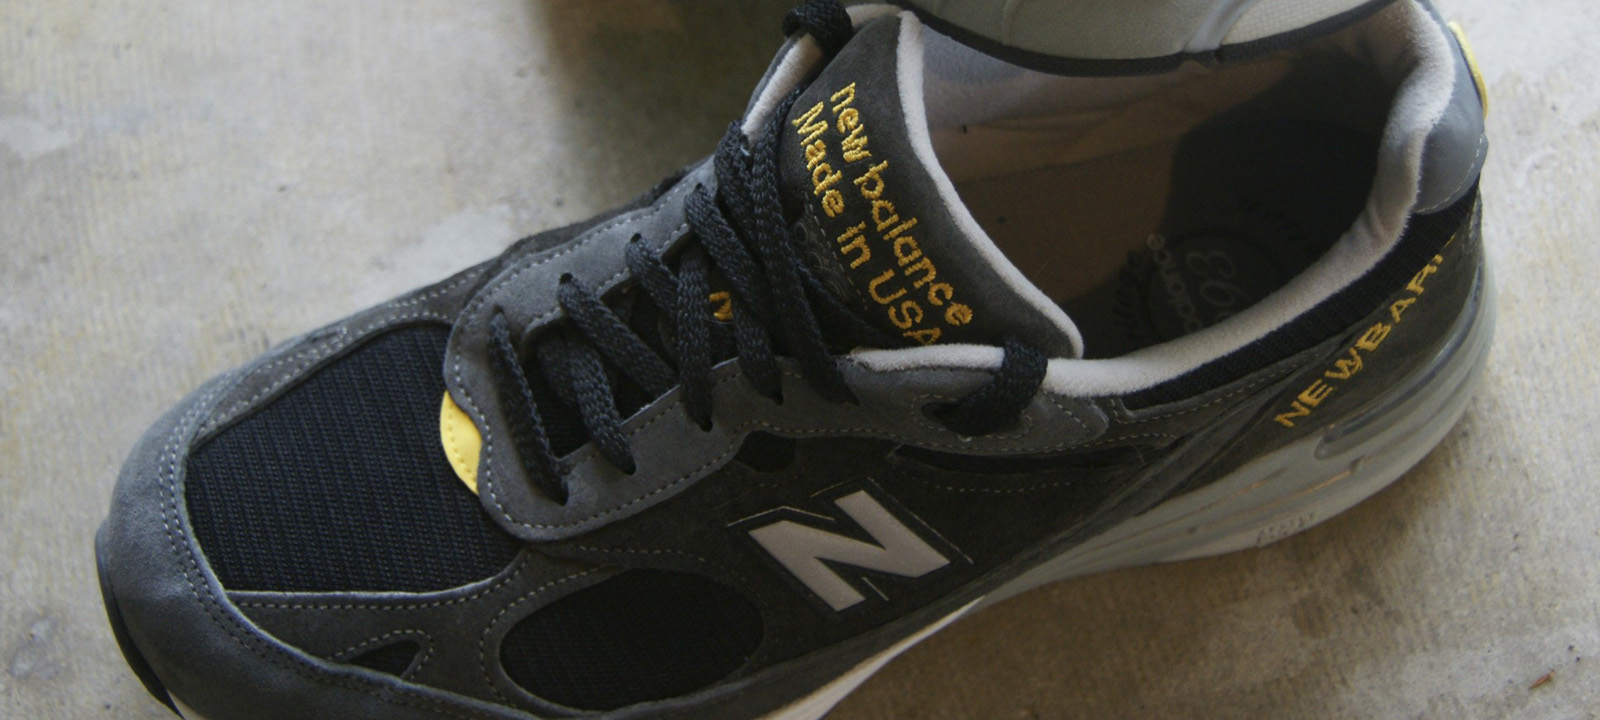 new balance 993 typically when shopping for shoes online you get a few